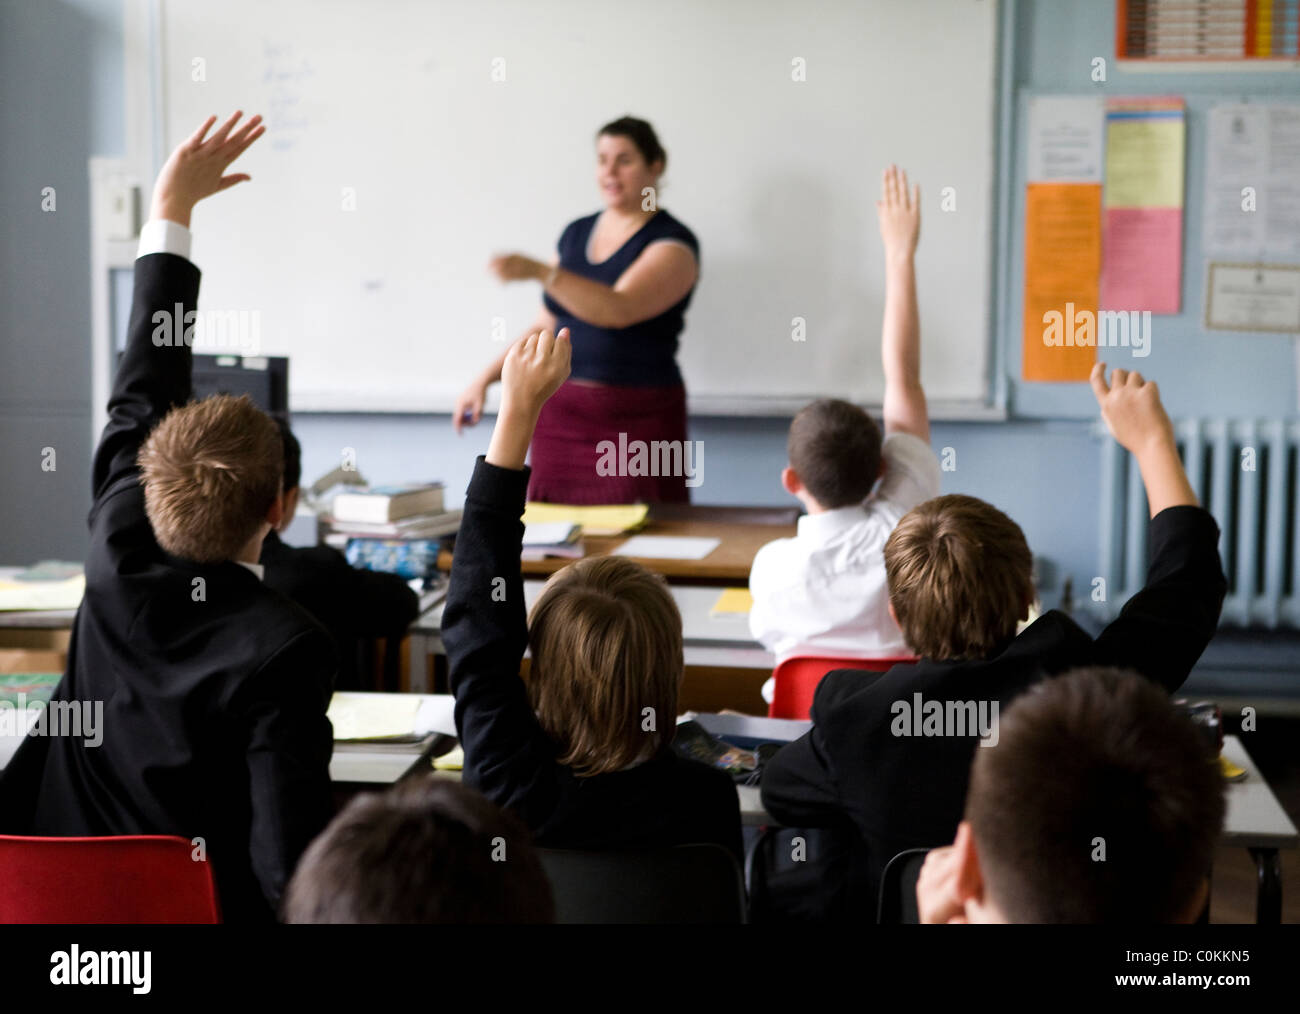 Pupils put up their hands to answer a questions at Maidstone Grammar school in Maidstone, Kent, U.K. - Stock Image